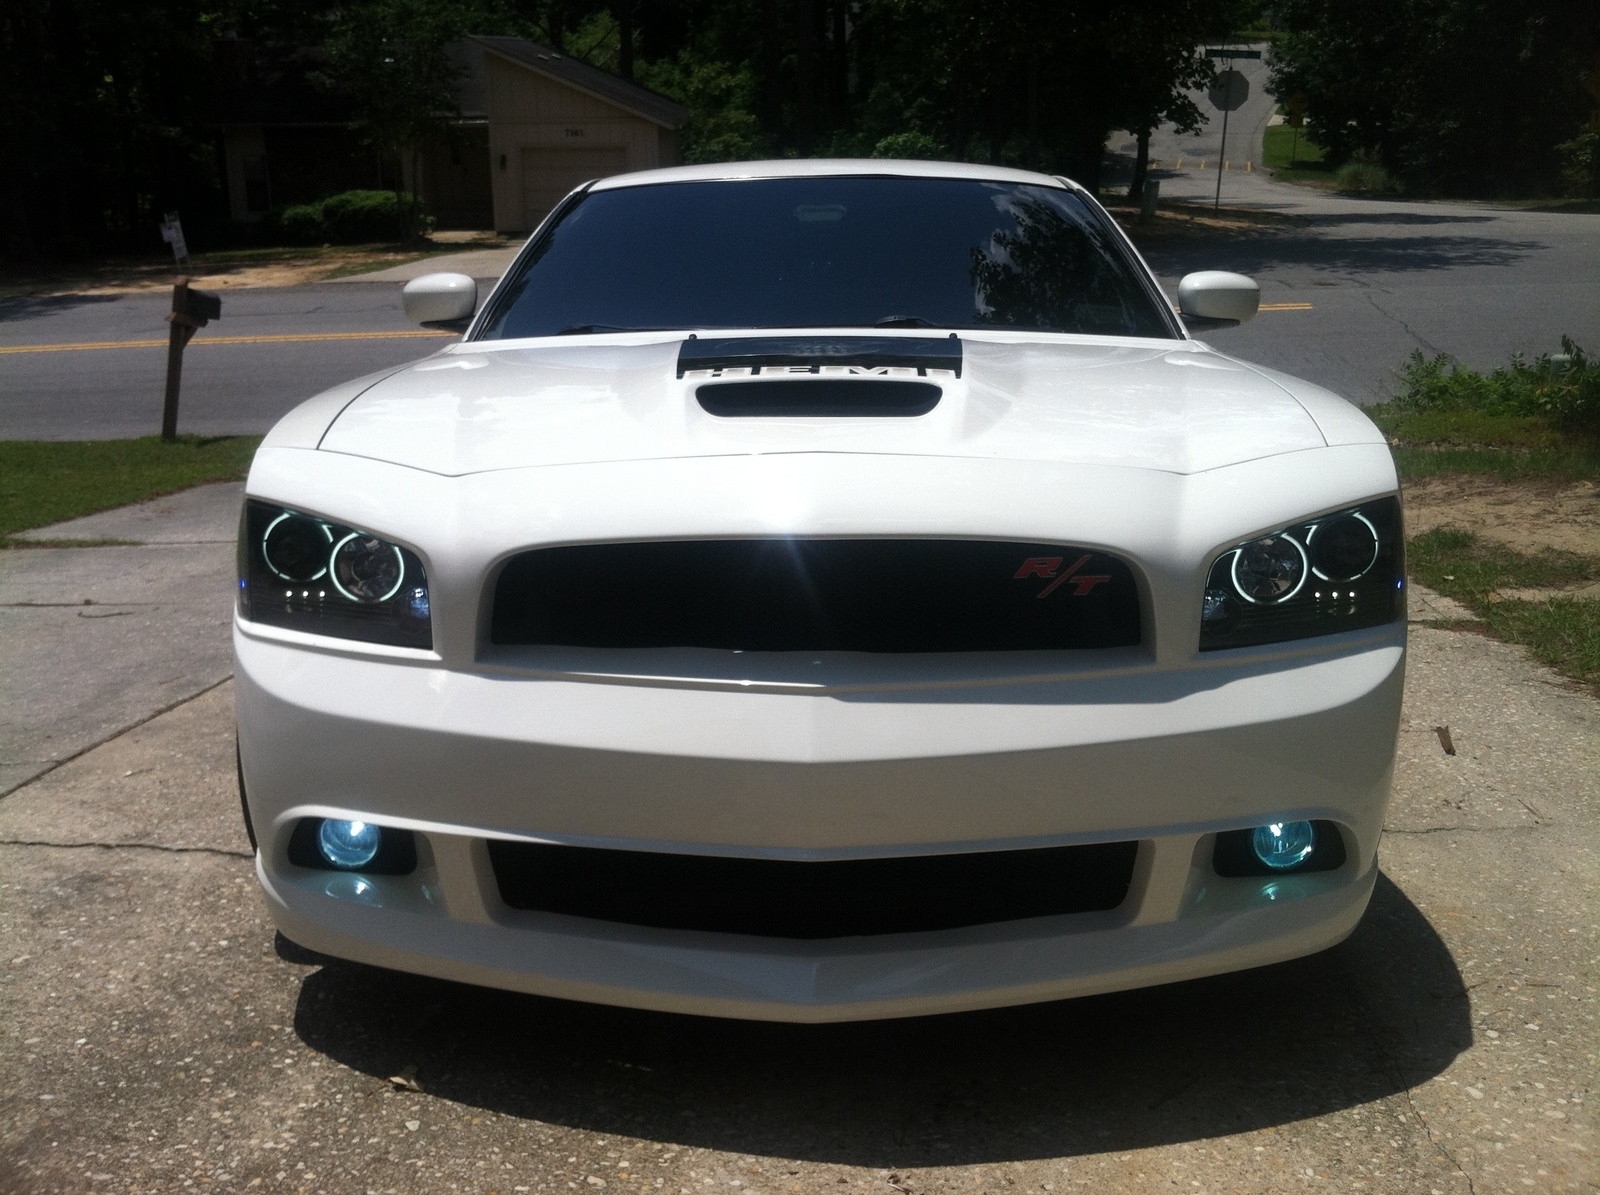 2007 Dodge Charger R/T AWD - Pictures - 2007 Dodge Charger R/T AWD pic ...